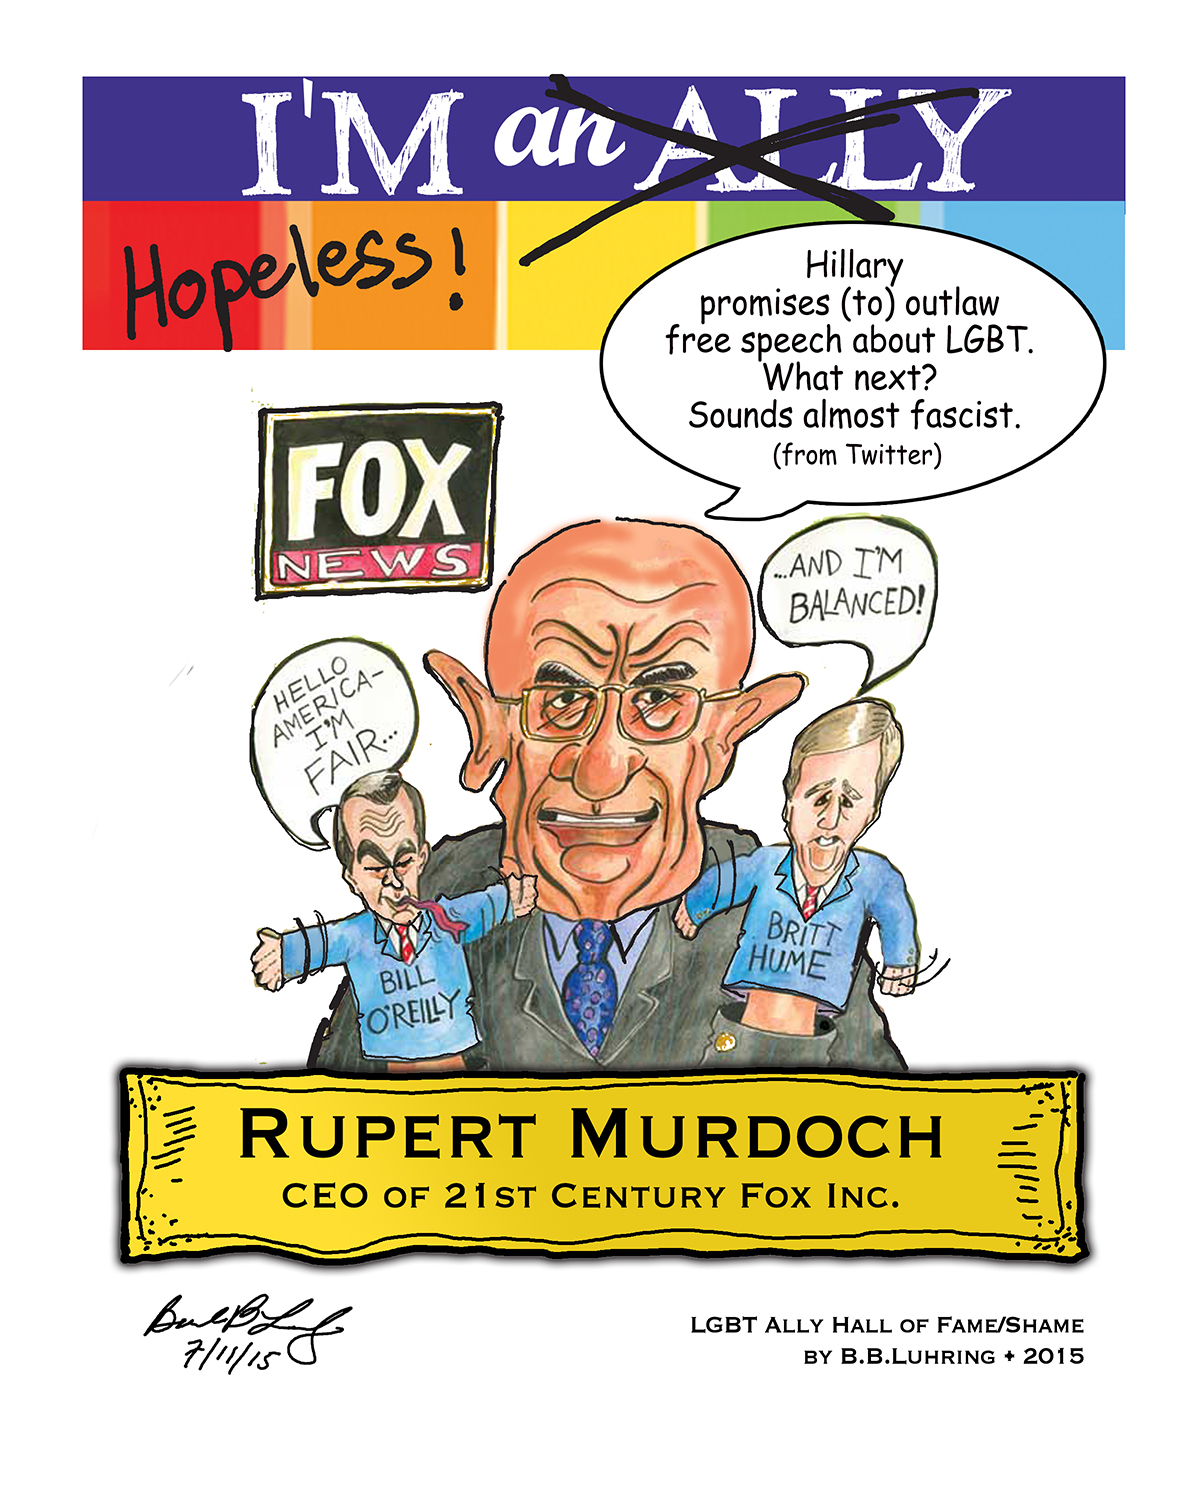 Rupert Murdoch former CEO of 21st Century Fox, ruminating on Hillary Clinton's statement supporting Marriage Equality. Of course Murdoch is hopeless. Cartoon by Geez! I'm Angry